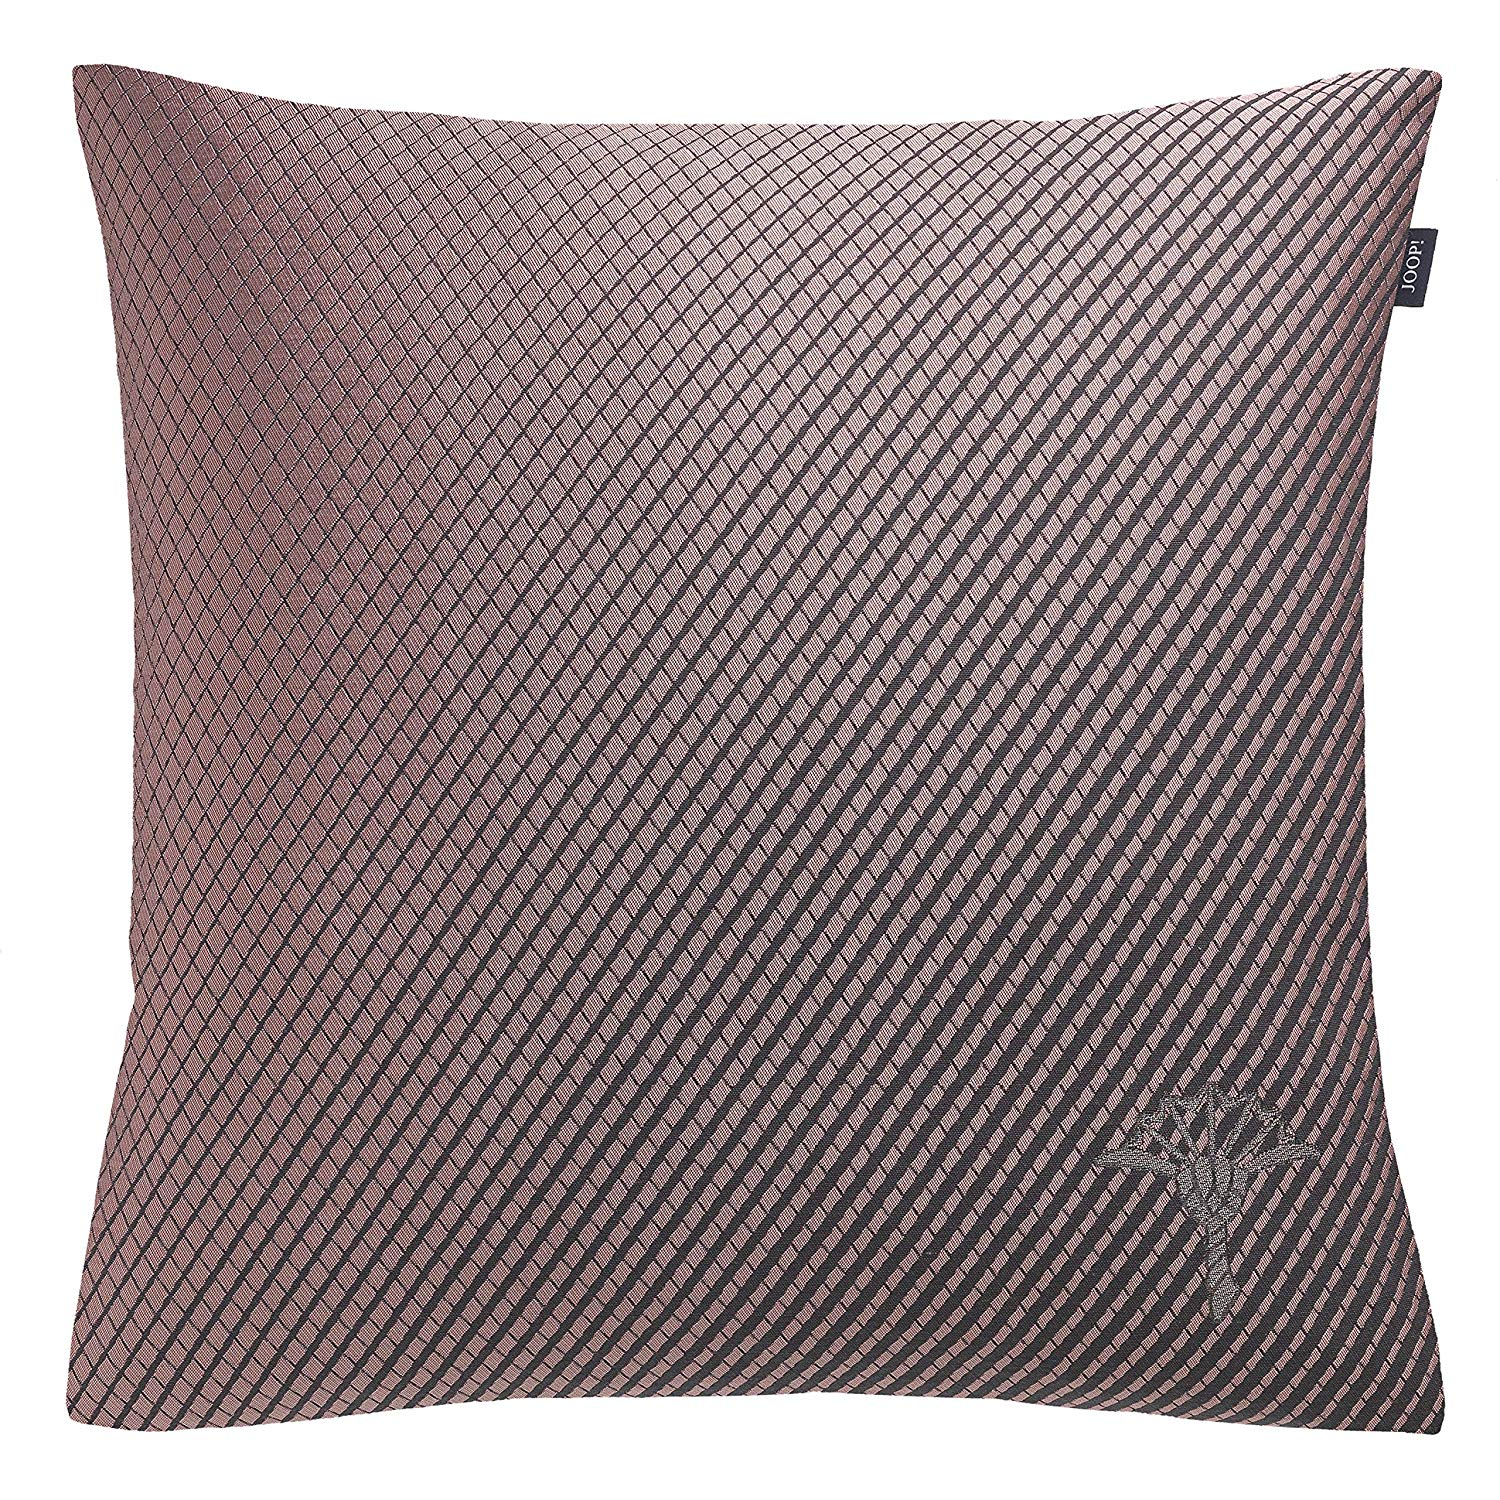 JOOP! Kissenhülle Diamond 50x50 cm 50768-075 rose